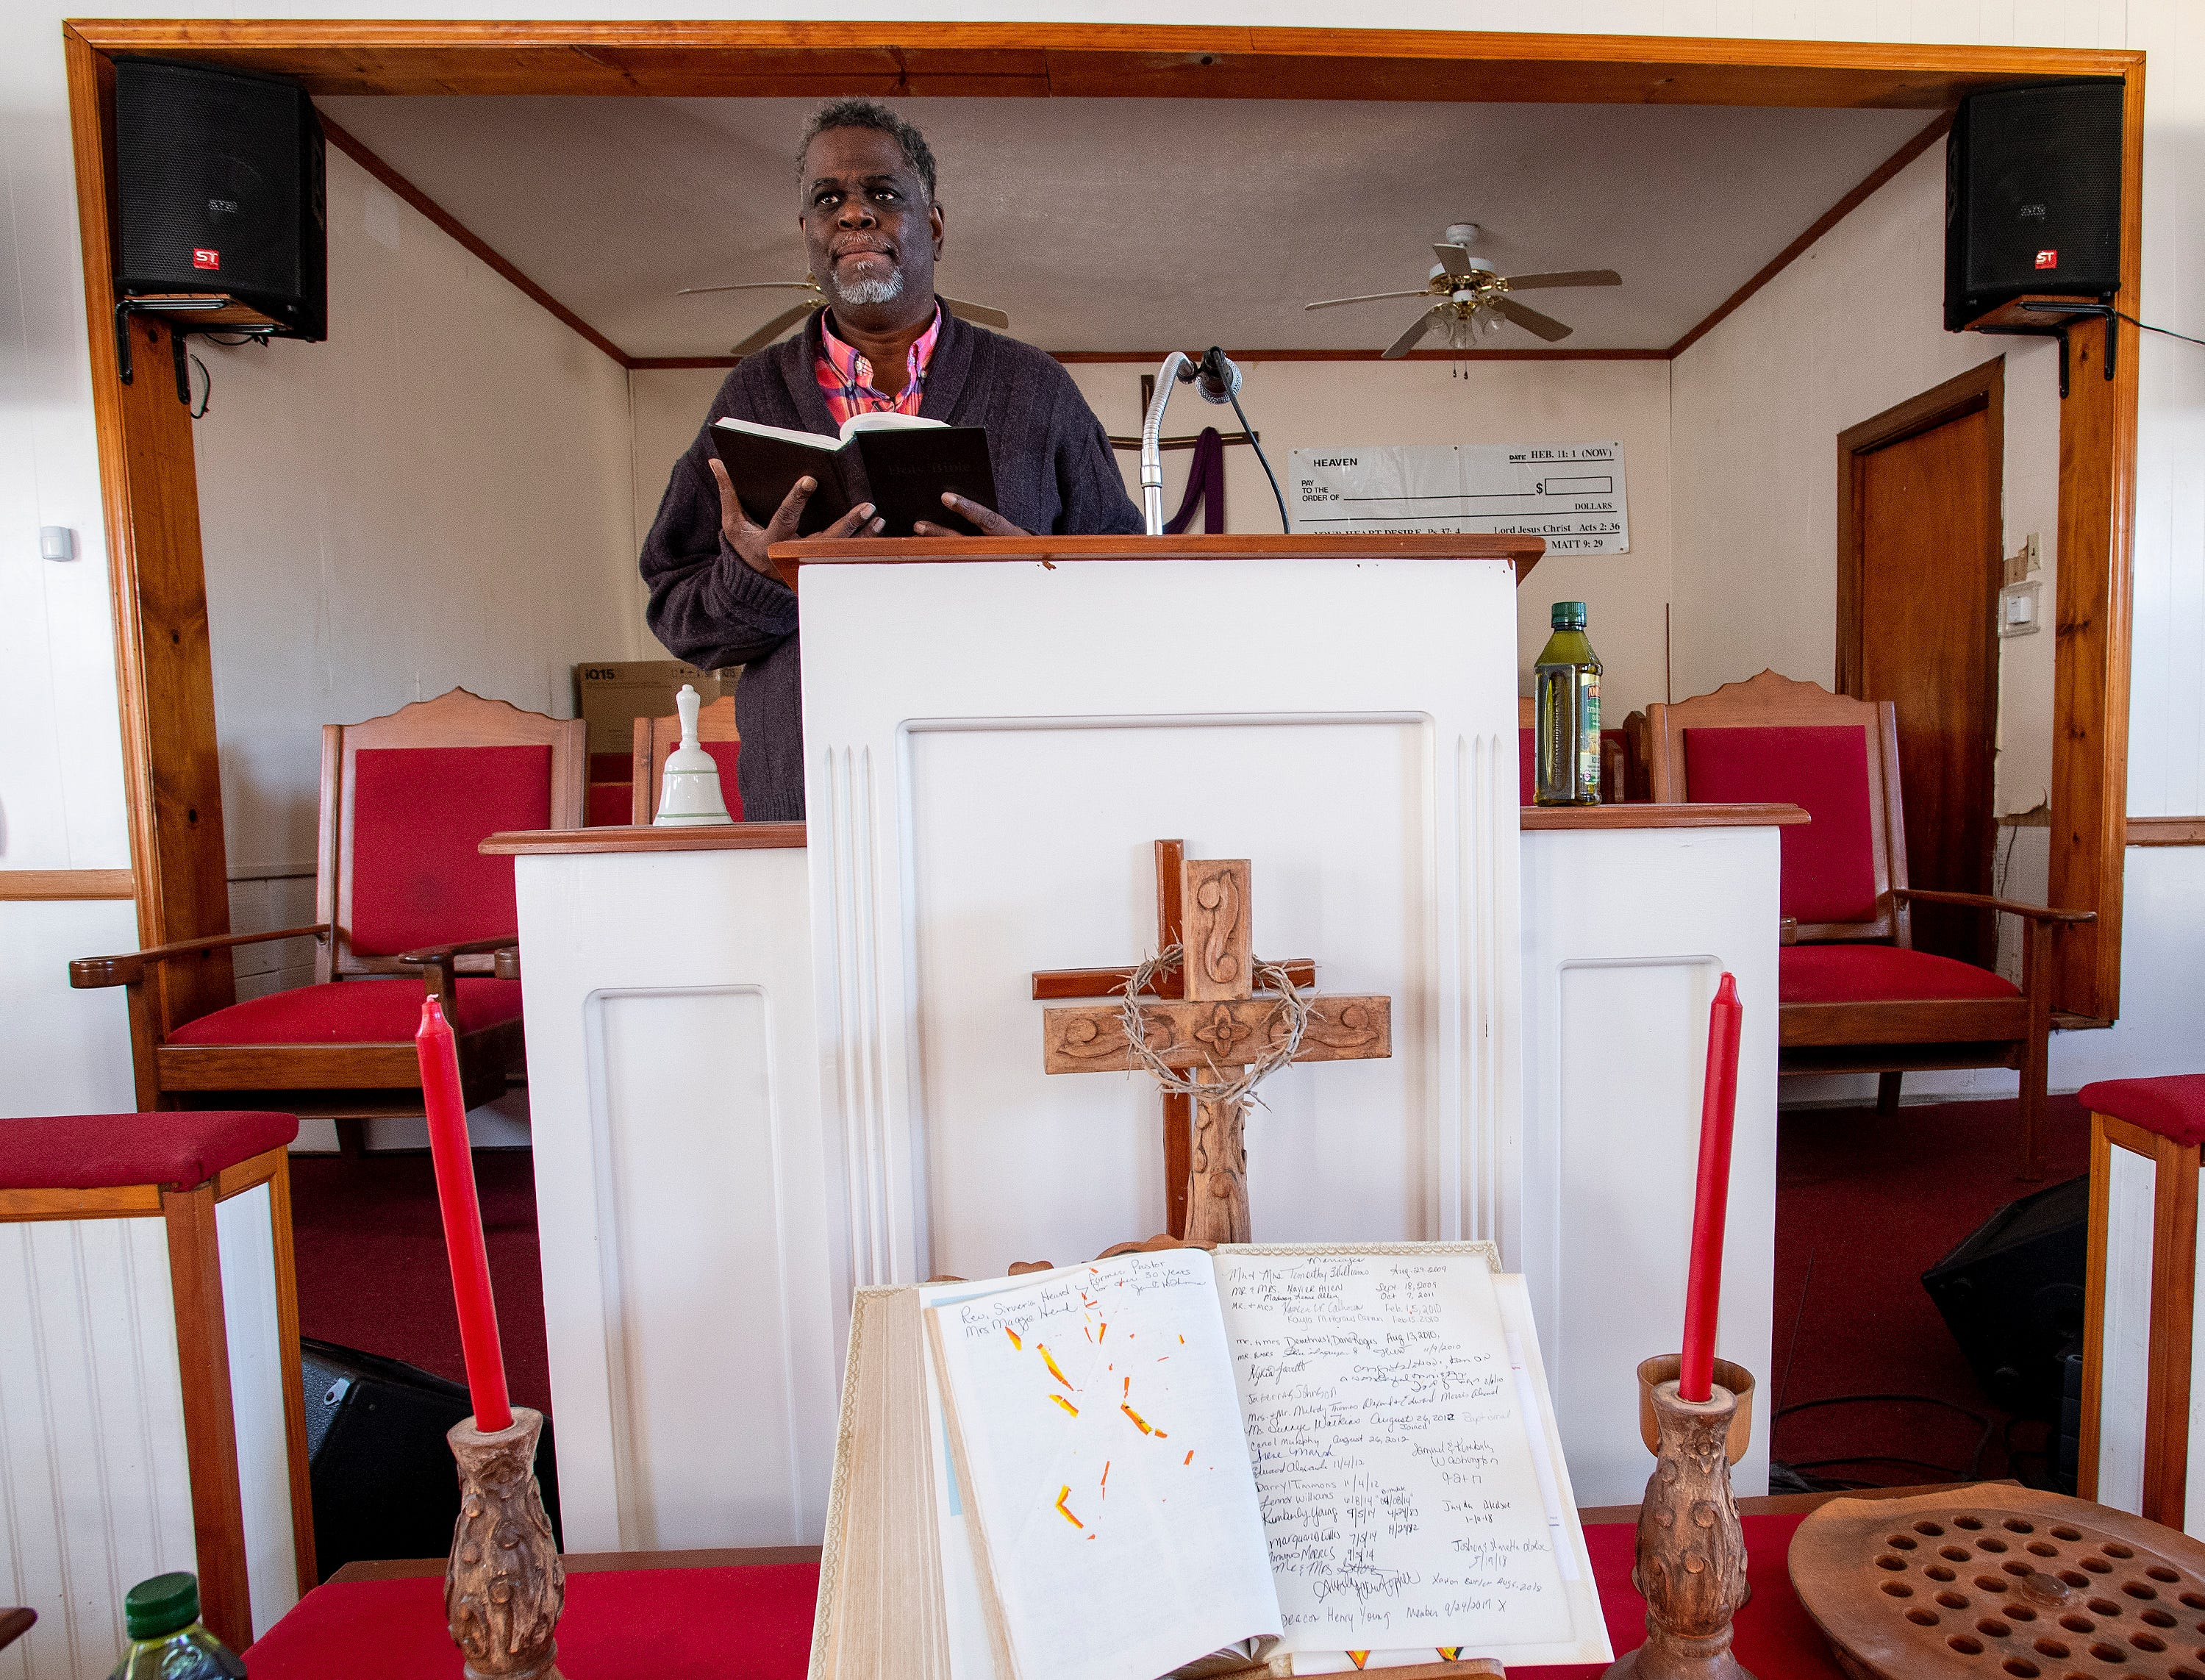 Ken Austin, executive director of the Mercy House and pastor at New Walk of Life Church, stands in the pulpit at his church in Montgomery, Ala., on Wednesday February 13, 2019.